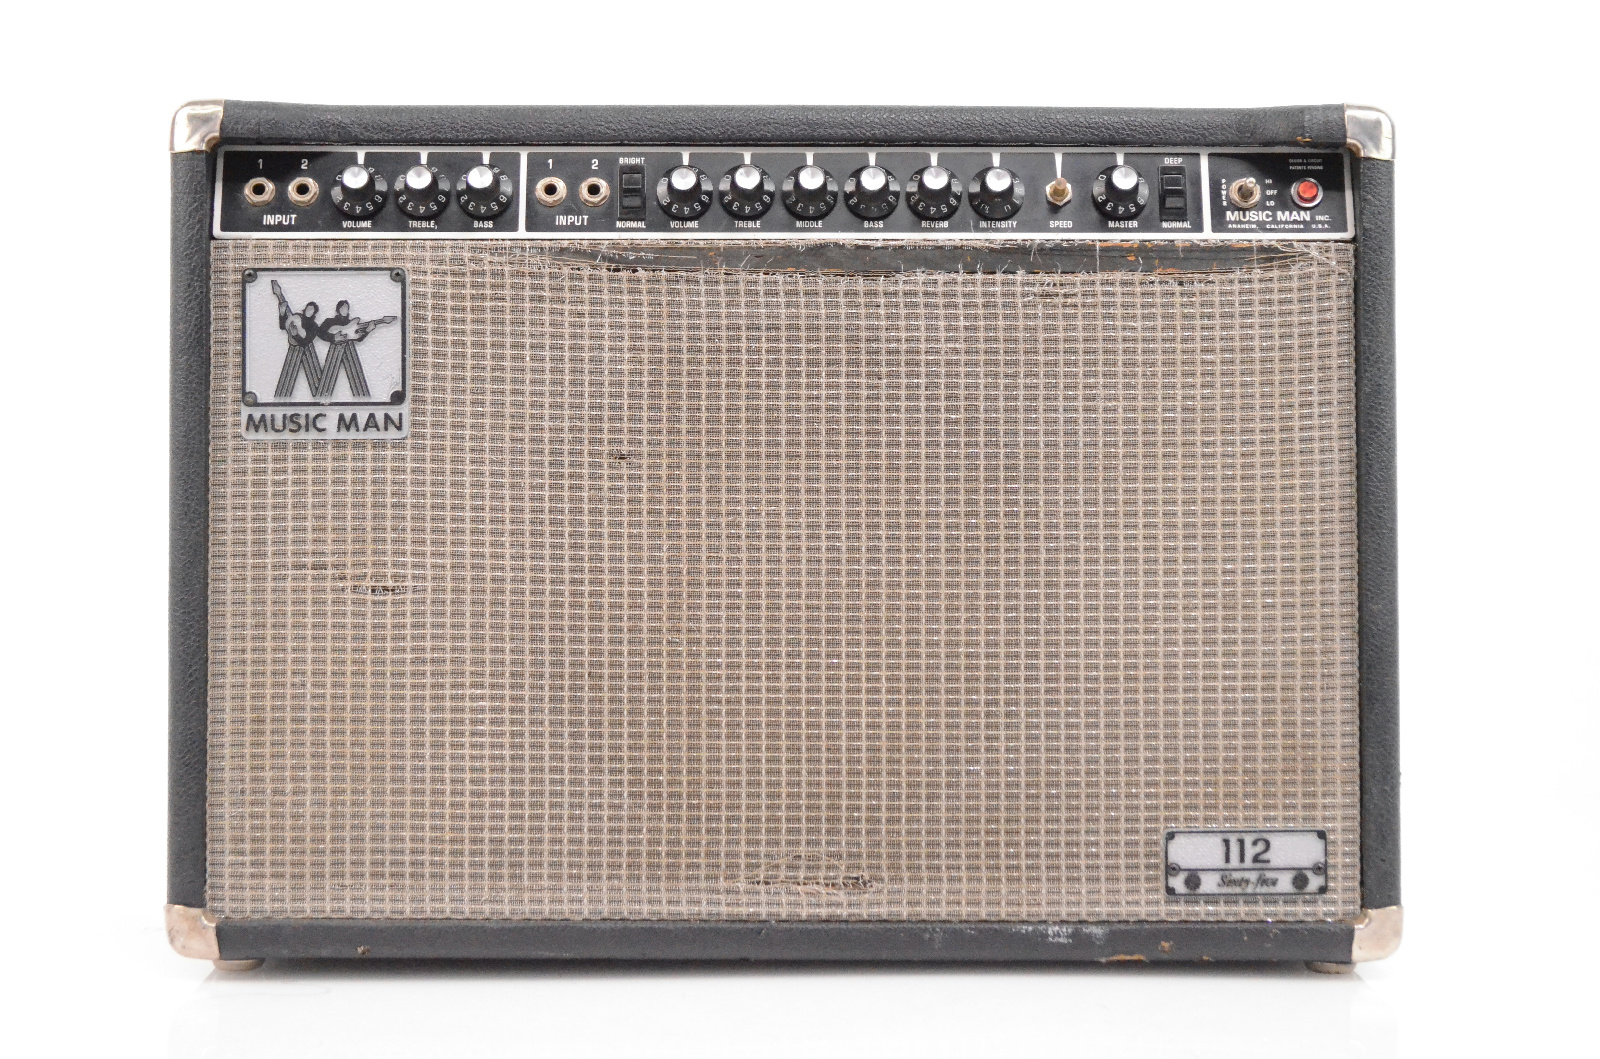 Music Man 112 Sixty-Five Combo Guitar Amplifier Amp w/ Friedman Gain Mod #31892